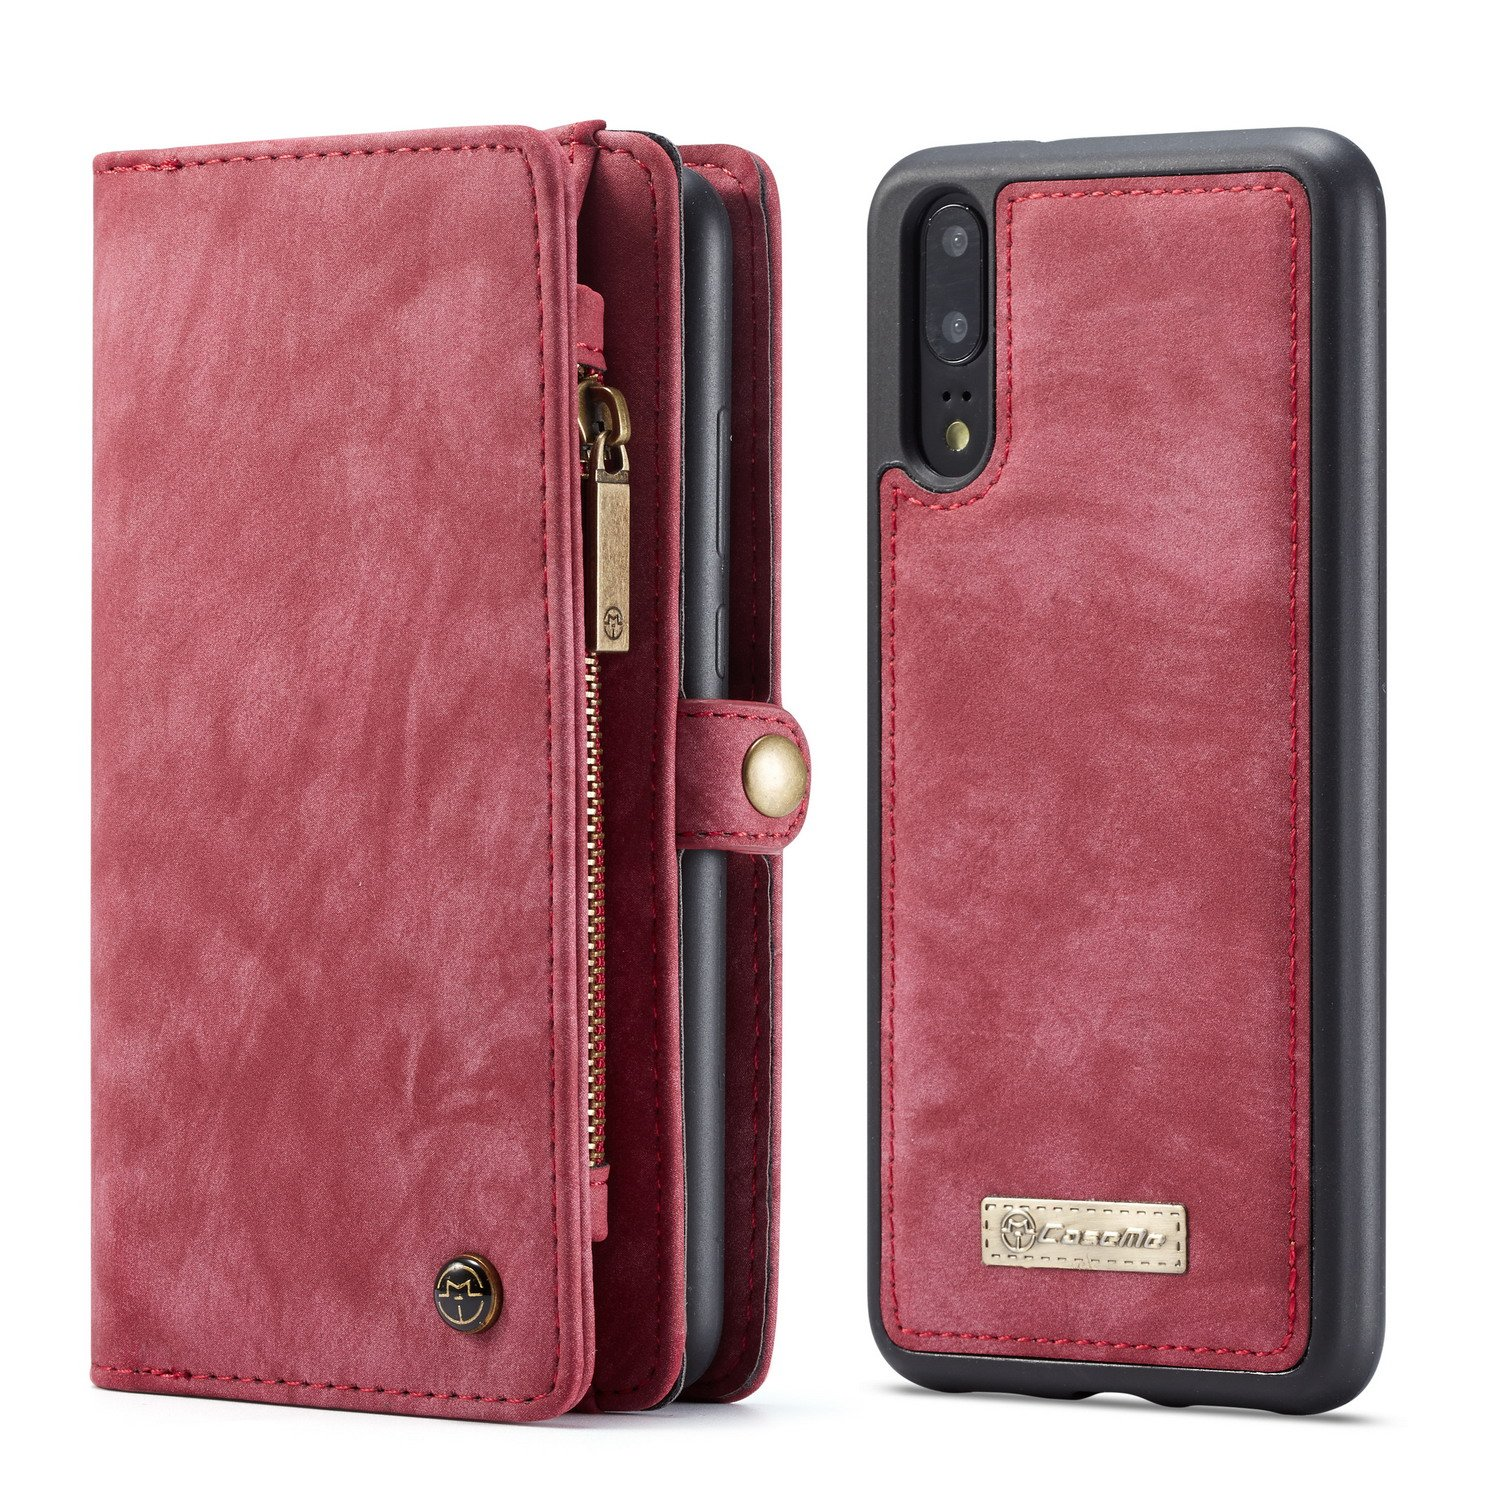 Huawei P20 Wallet,AKHVRS Ltalian Cowhide Leather Zipper Wallet Magnetic Closure Case Cover [Folio Style] with Card Slot and Removable Magnetic Back Cover for Huawei P20